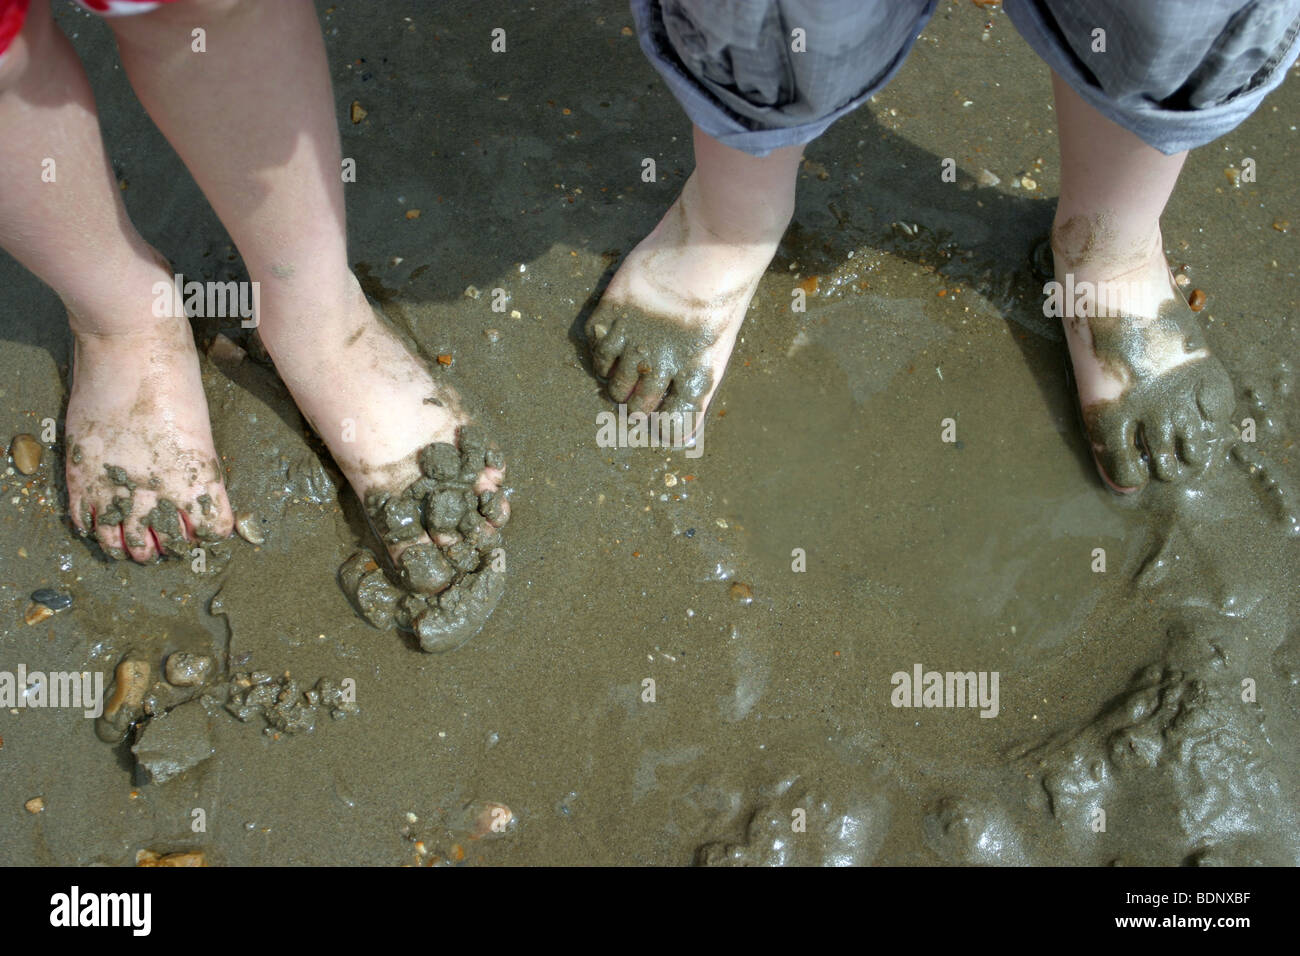 Children's feet covered in mud and sand on Charmouth beach, Dorset - Stock Image